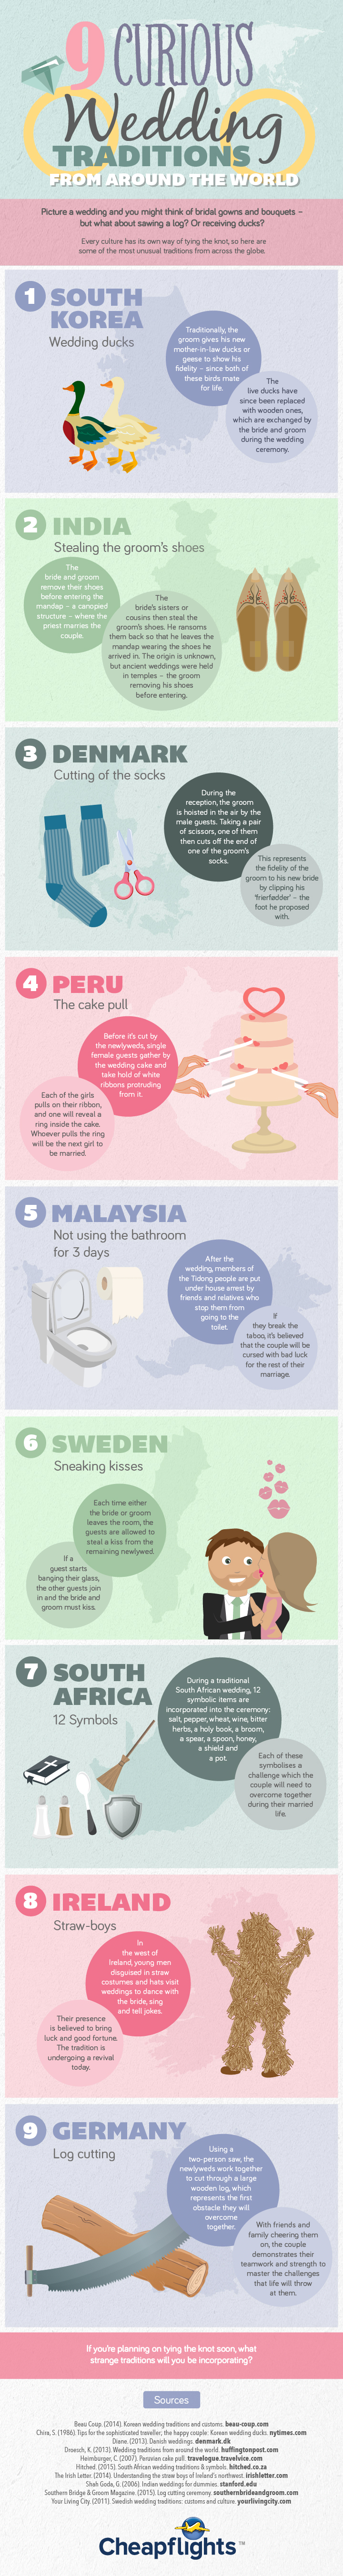 9-curious-wedding-traditions-from-around-the-world